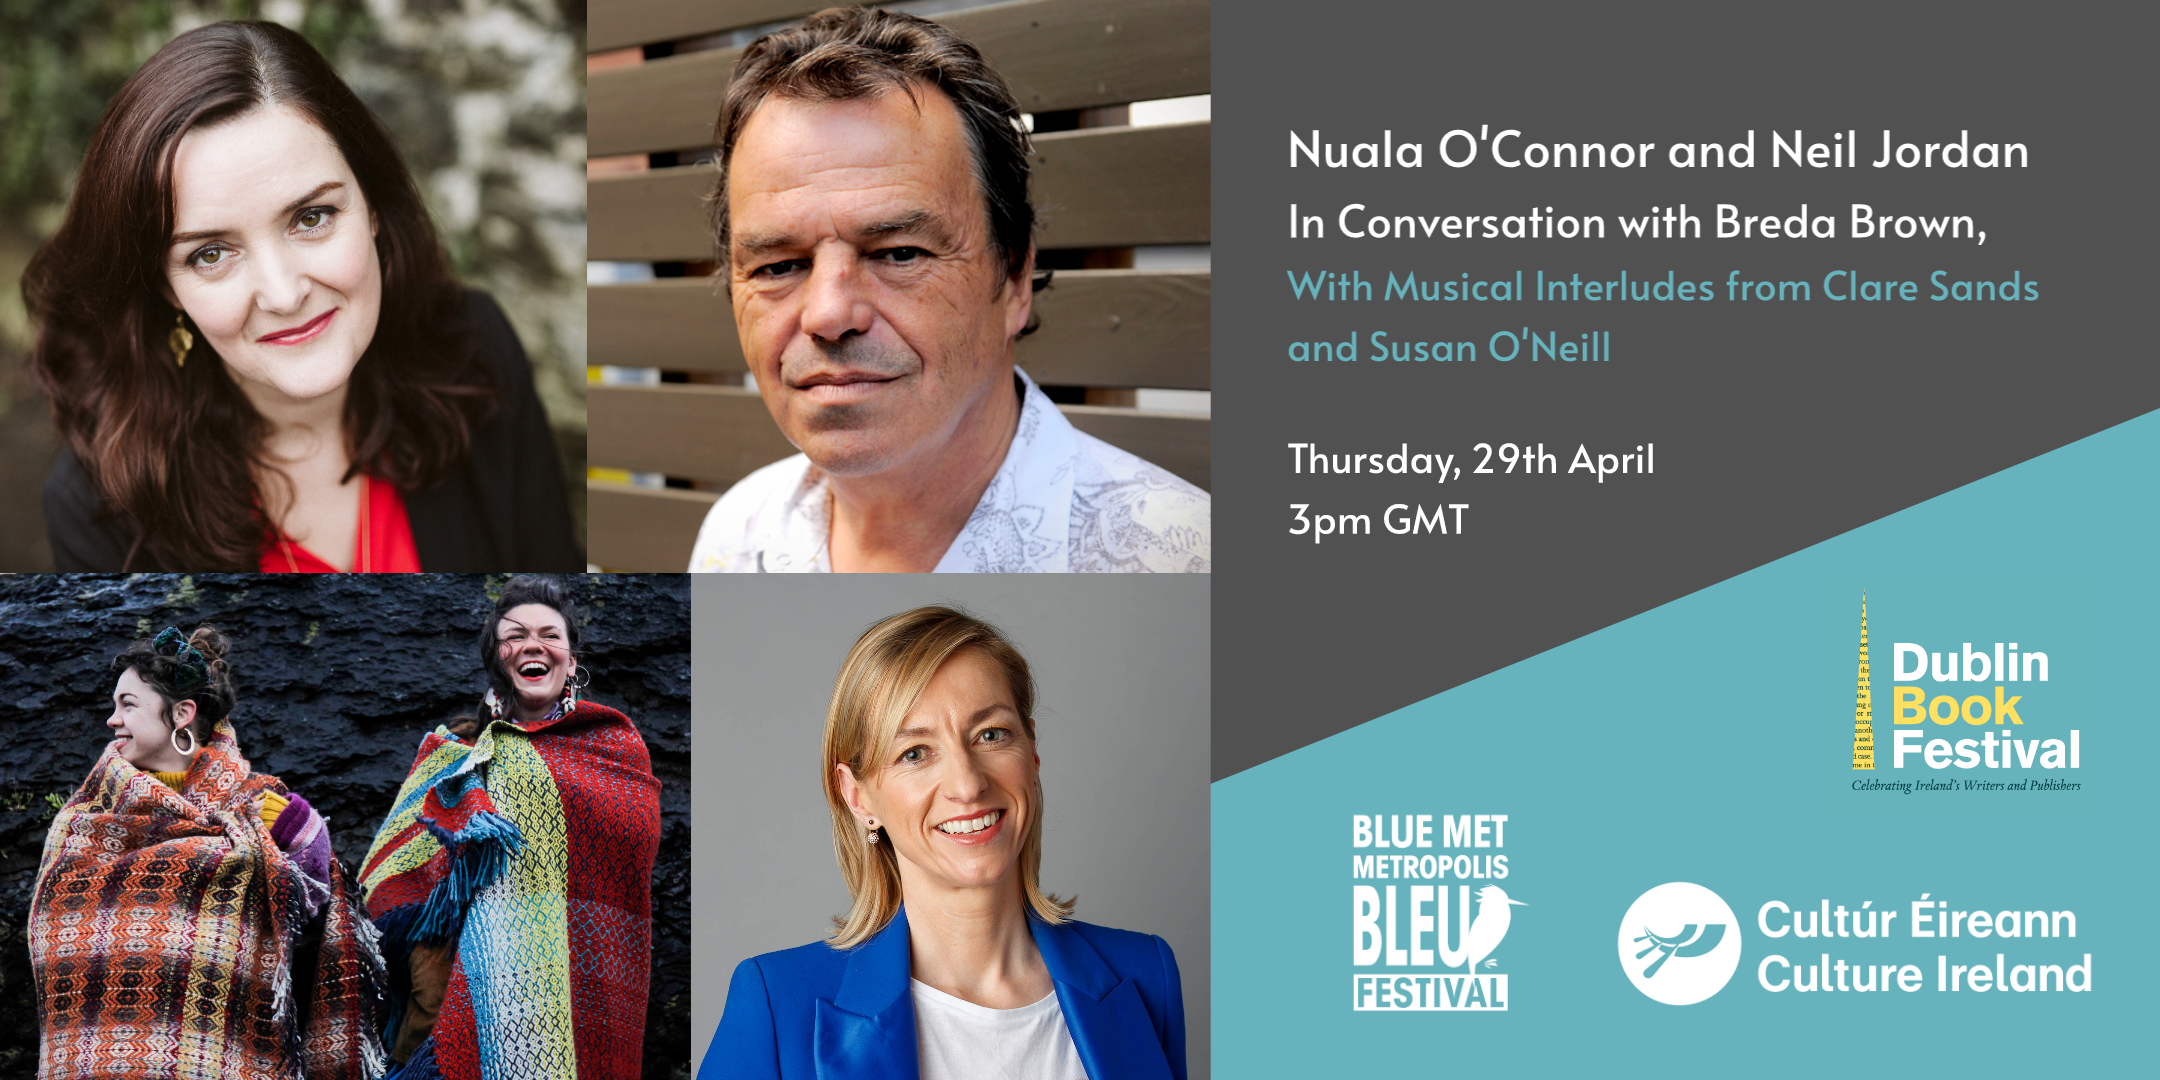 Event image includes headshots of Nuala O'Connor, Neil Jordan, Clare Sands, Susan O'Neill and Breda Brown. Includes logos of DBF, Blue Metropolis and Culture Ireland